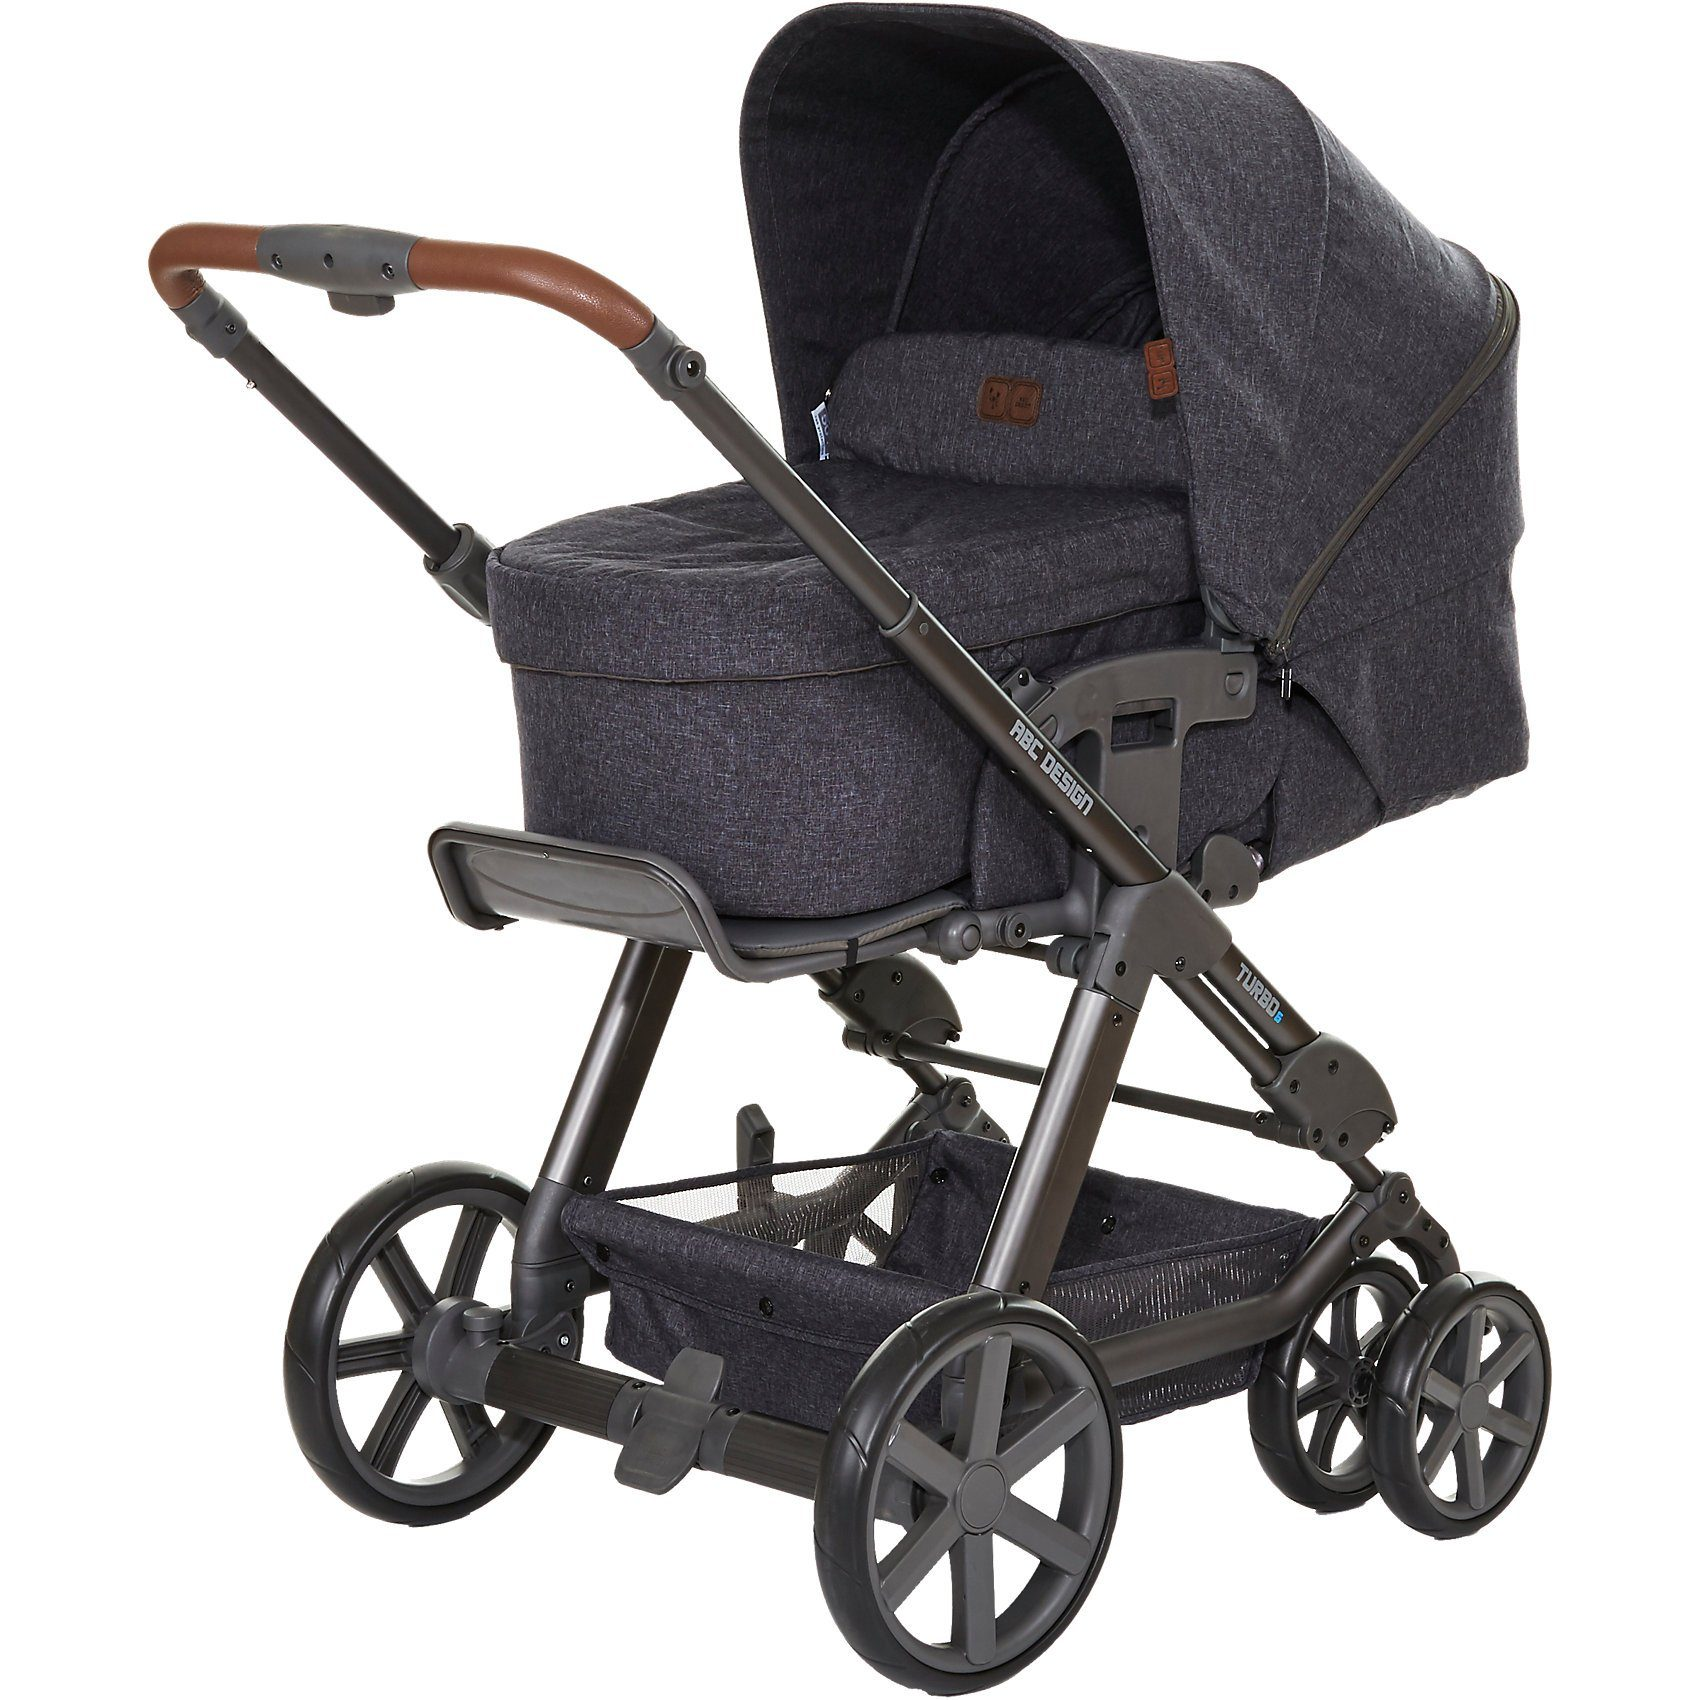 ABC Design Kombi Kinderwagen Turbo 6, street, 2017